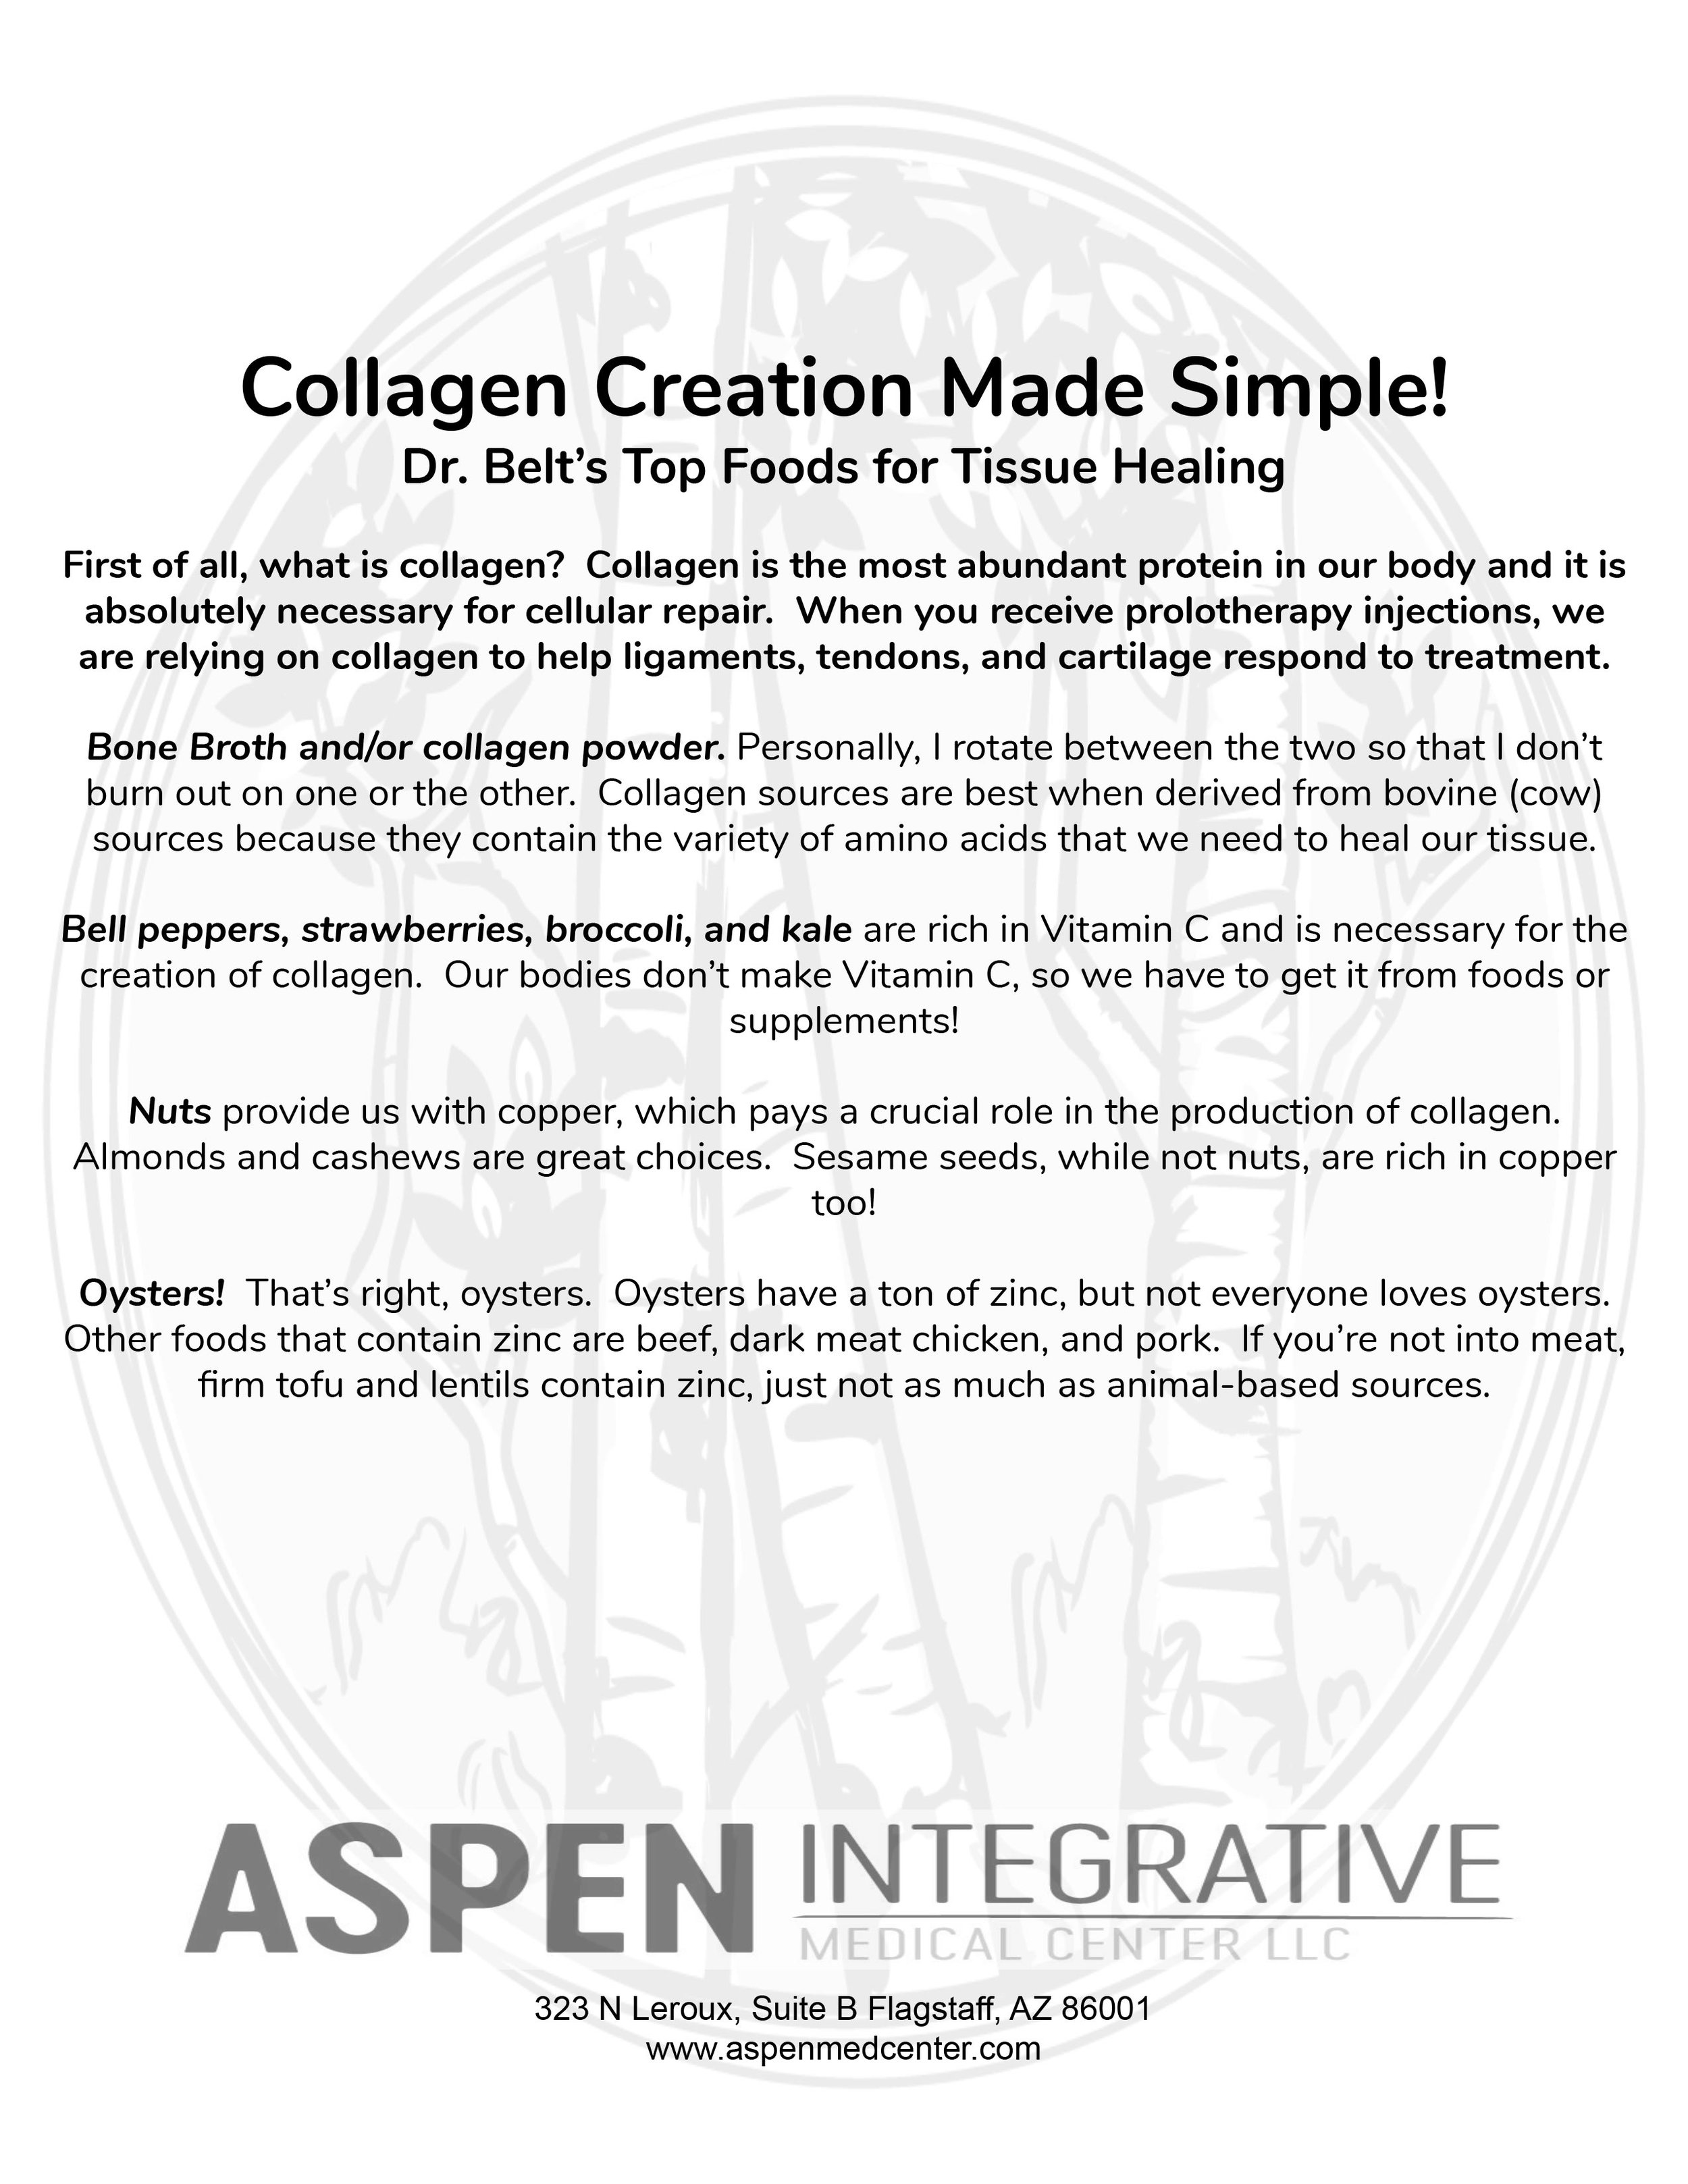 collagen-creation-resource.jpg